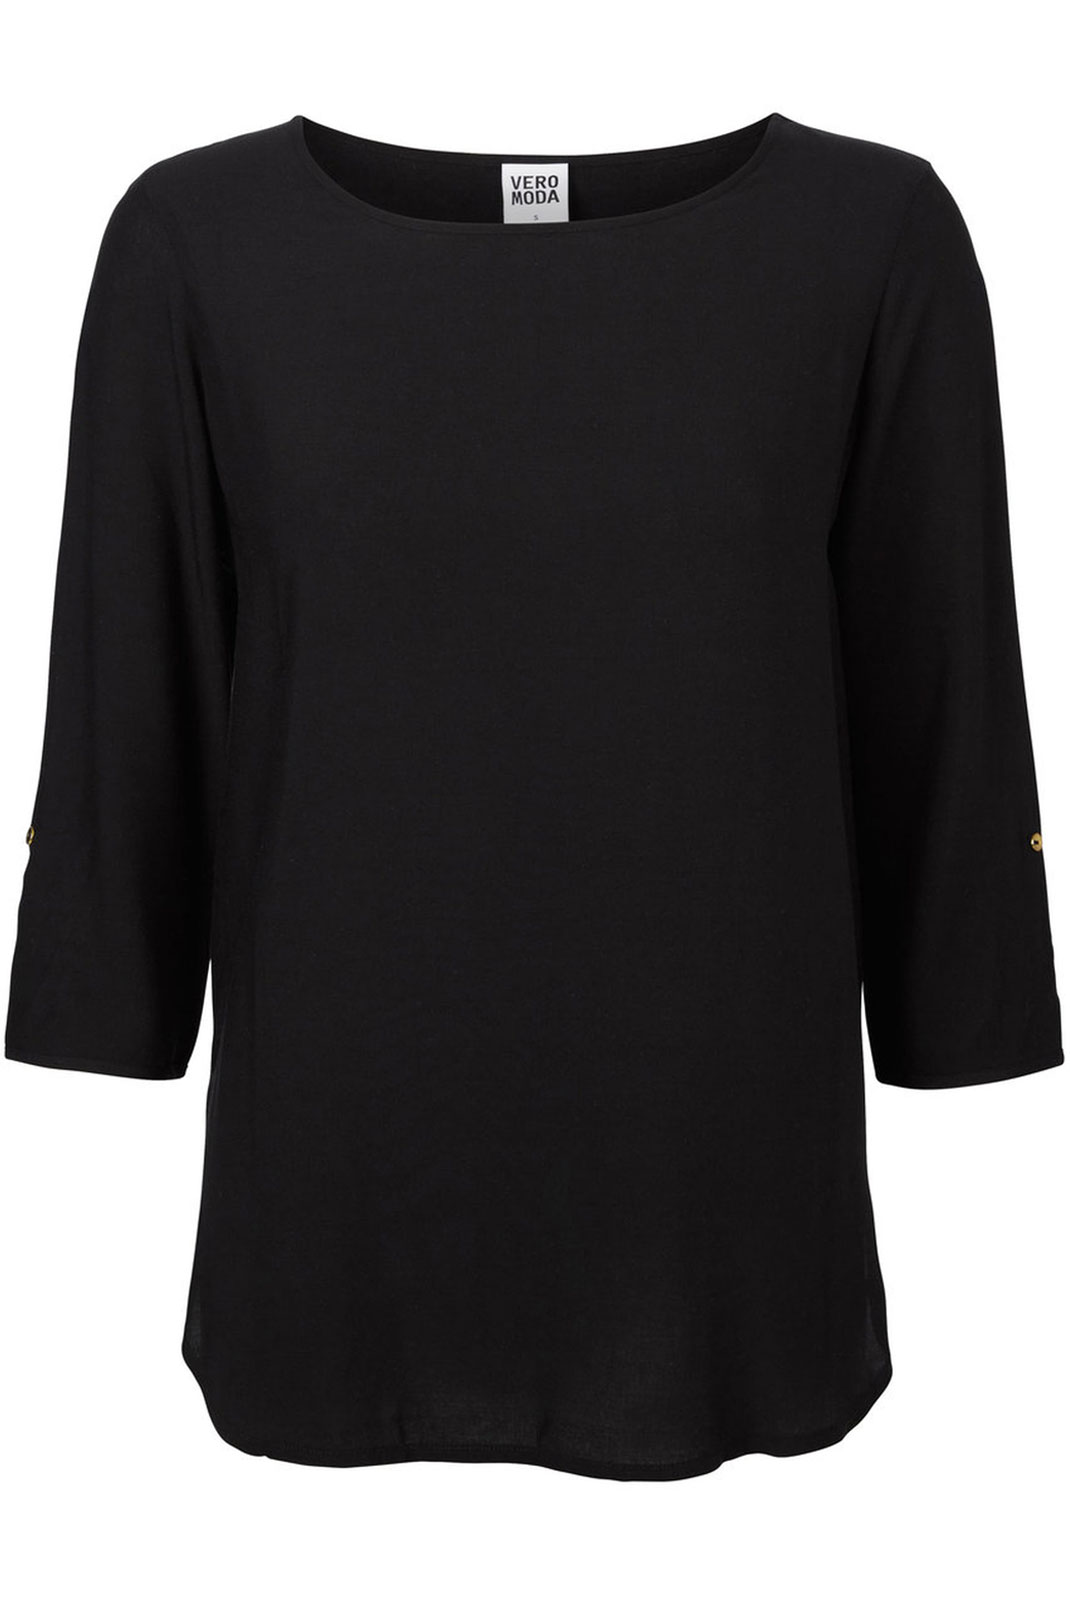 Blouses  Vero moda BOCA 3/4 FOLD UP BLOUSE NOOS BLACK